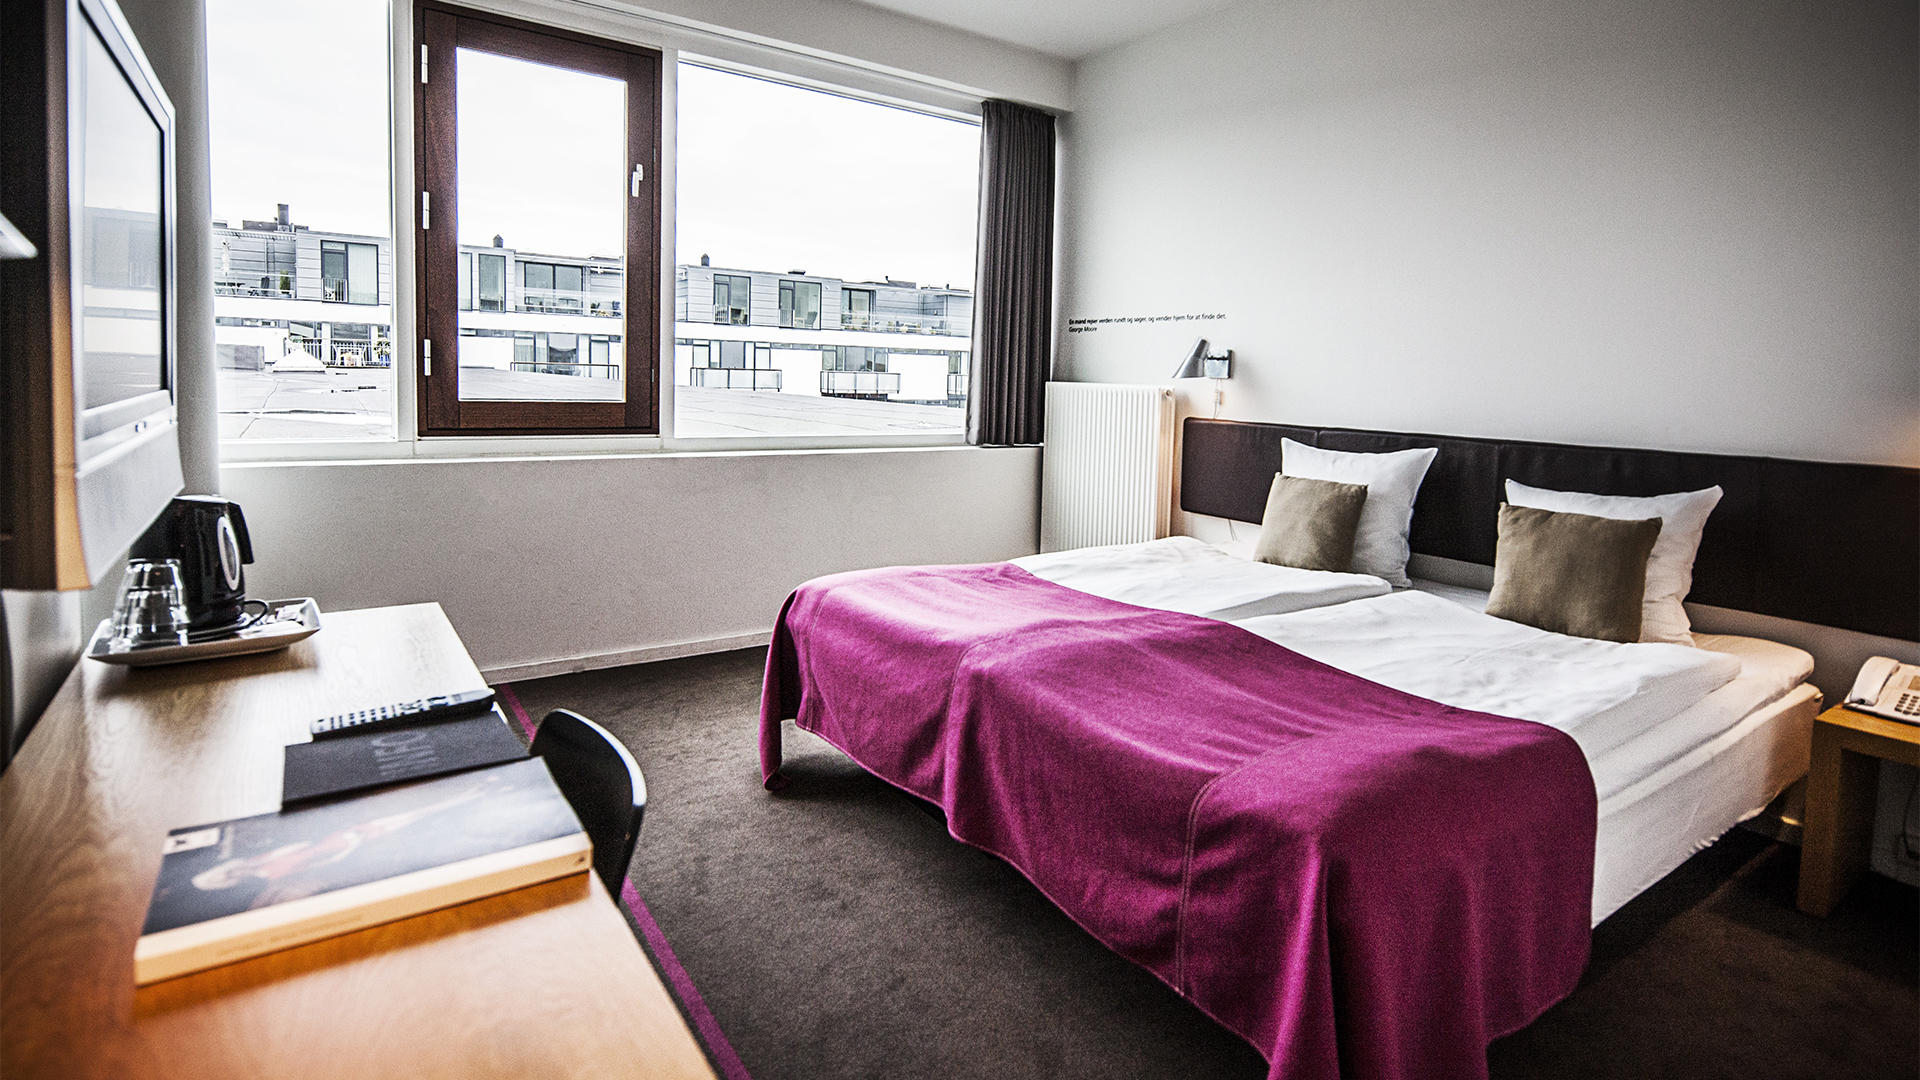 room-Deluxe-Double-Family-first-hotel-kolding-1051